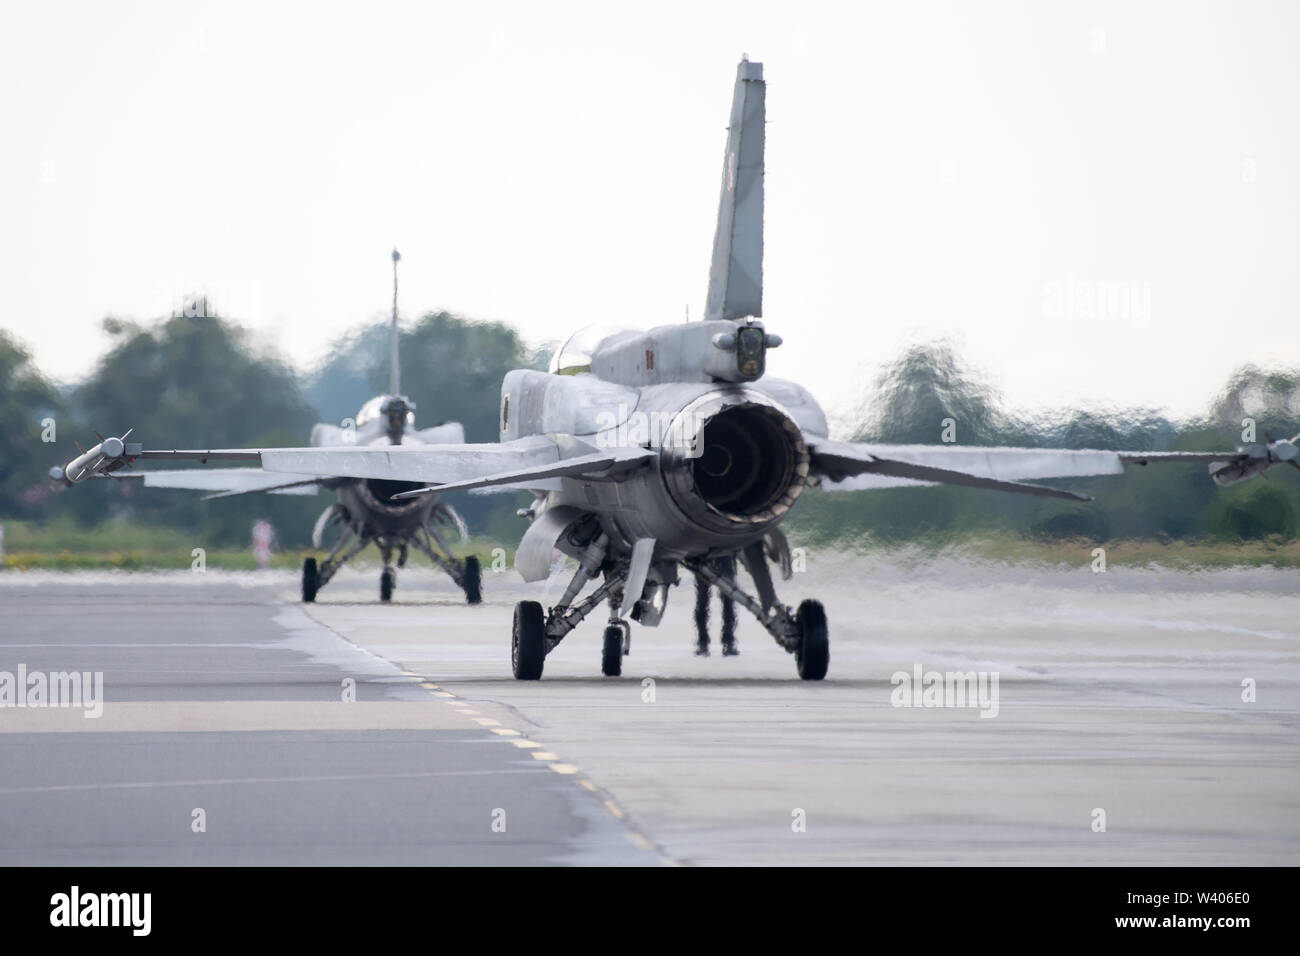 Supersonic multirole fighter aircraft General Dynamics F-16 Fighting Falcon in Gdynia, Poland. July 13th 2019 © Wojciech Strozyk / Alamy Stock Photo - Stock Image